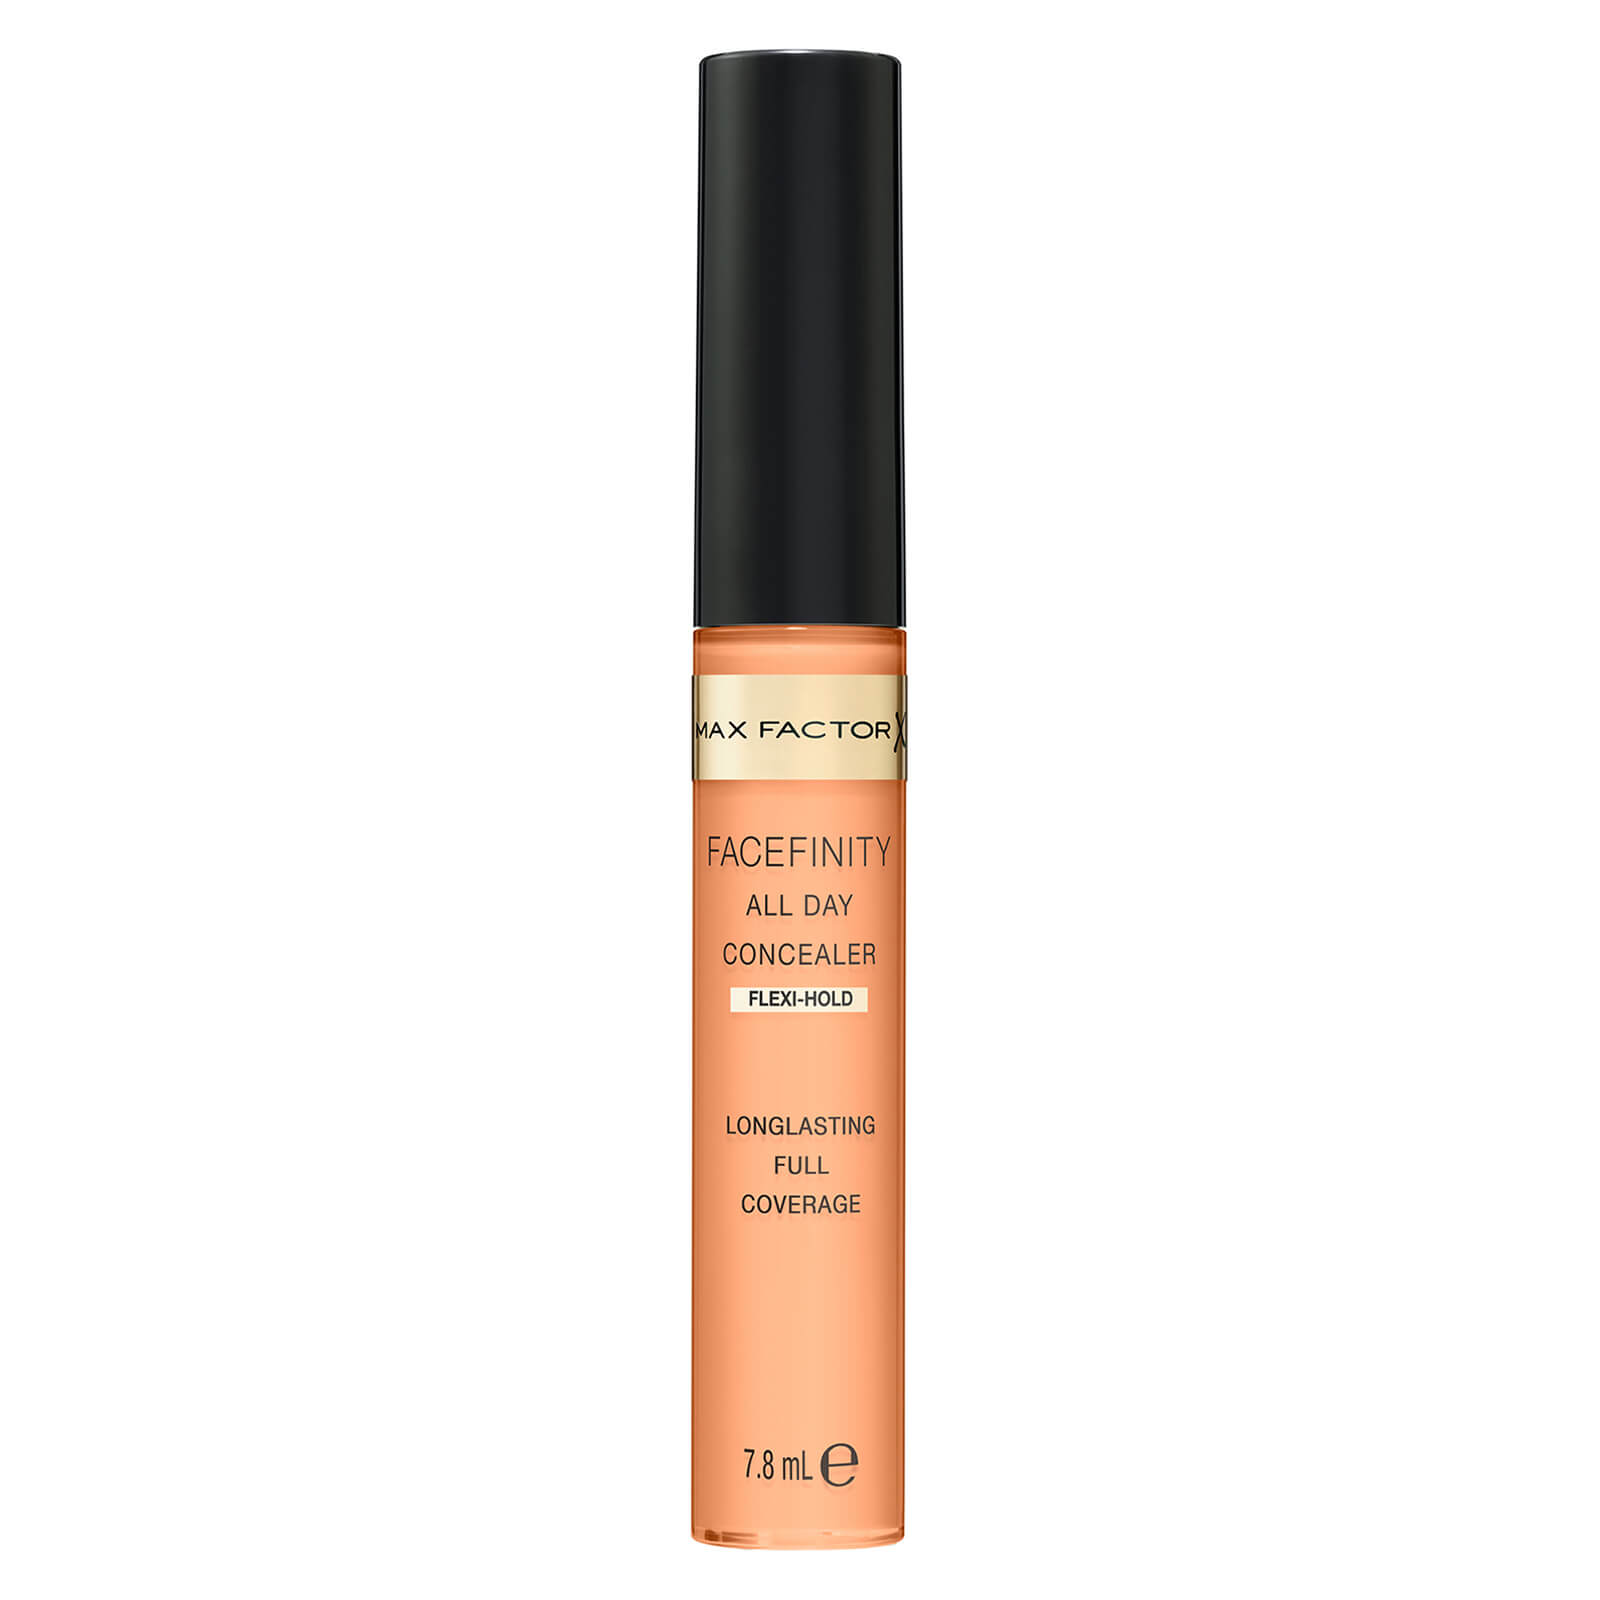 Купить Max Factor Facefinity All Day Concealer 7.9ml (Various Shades) - 50